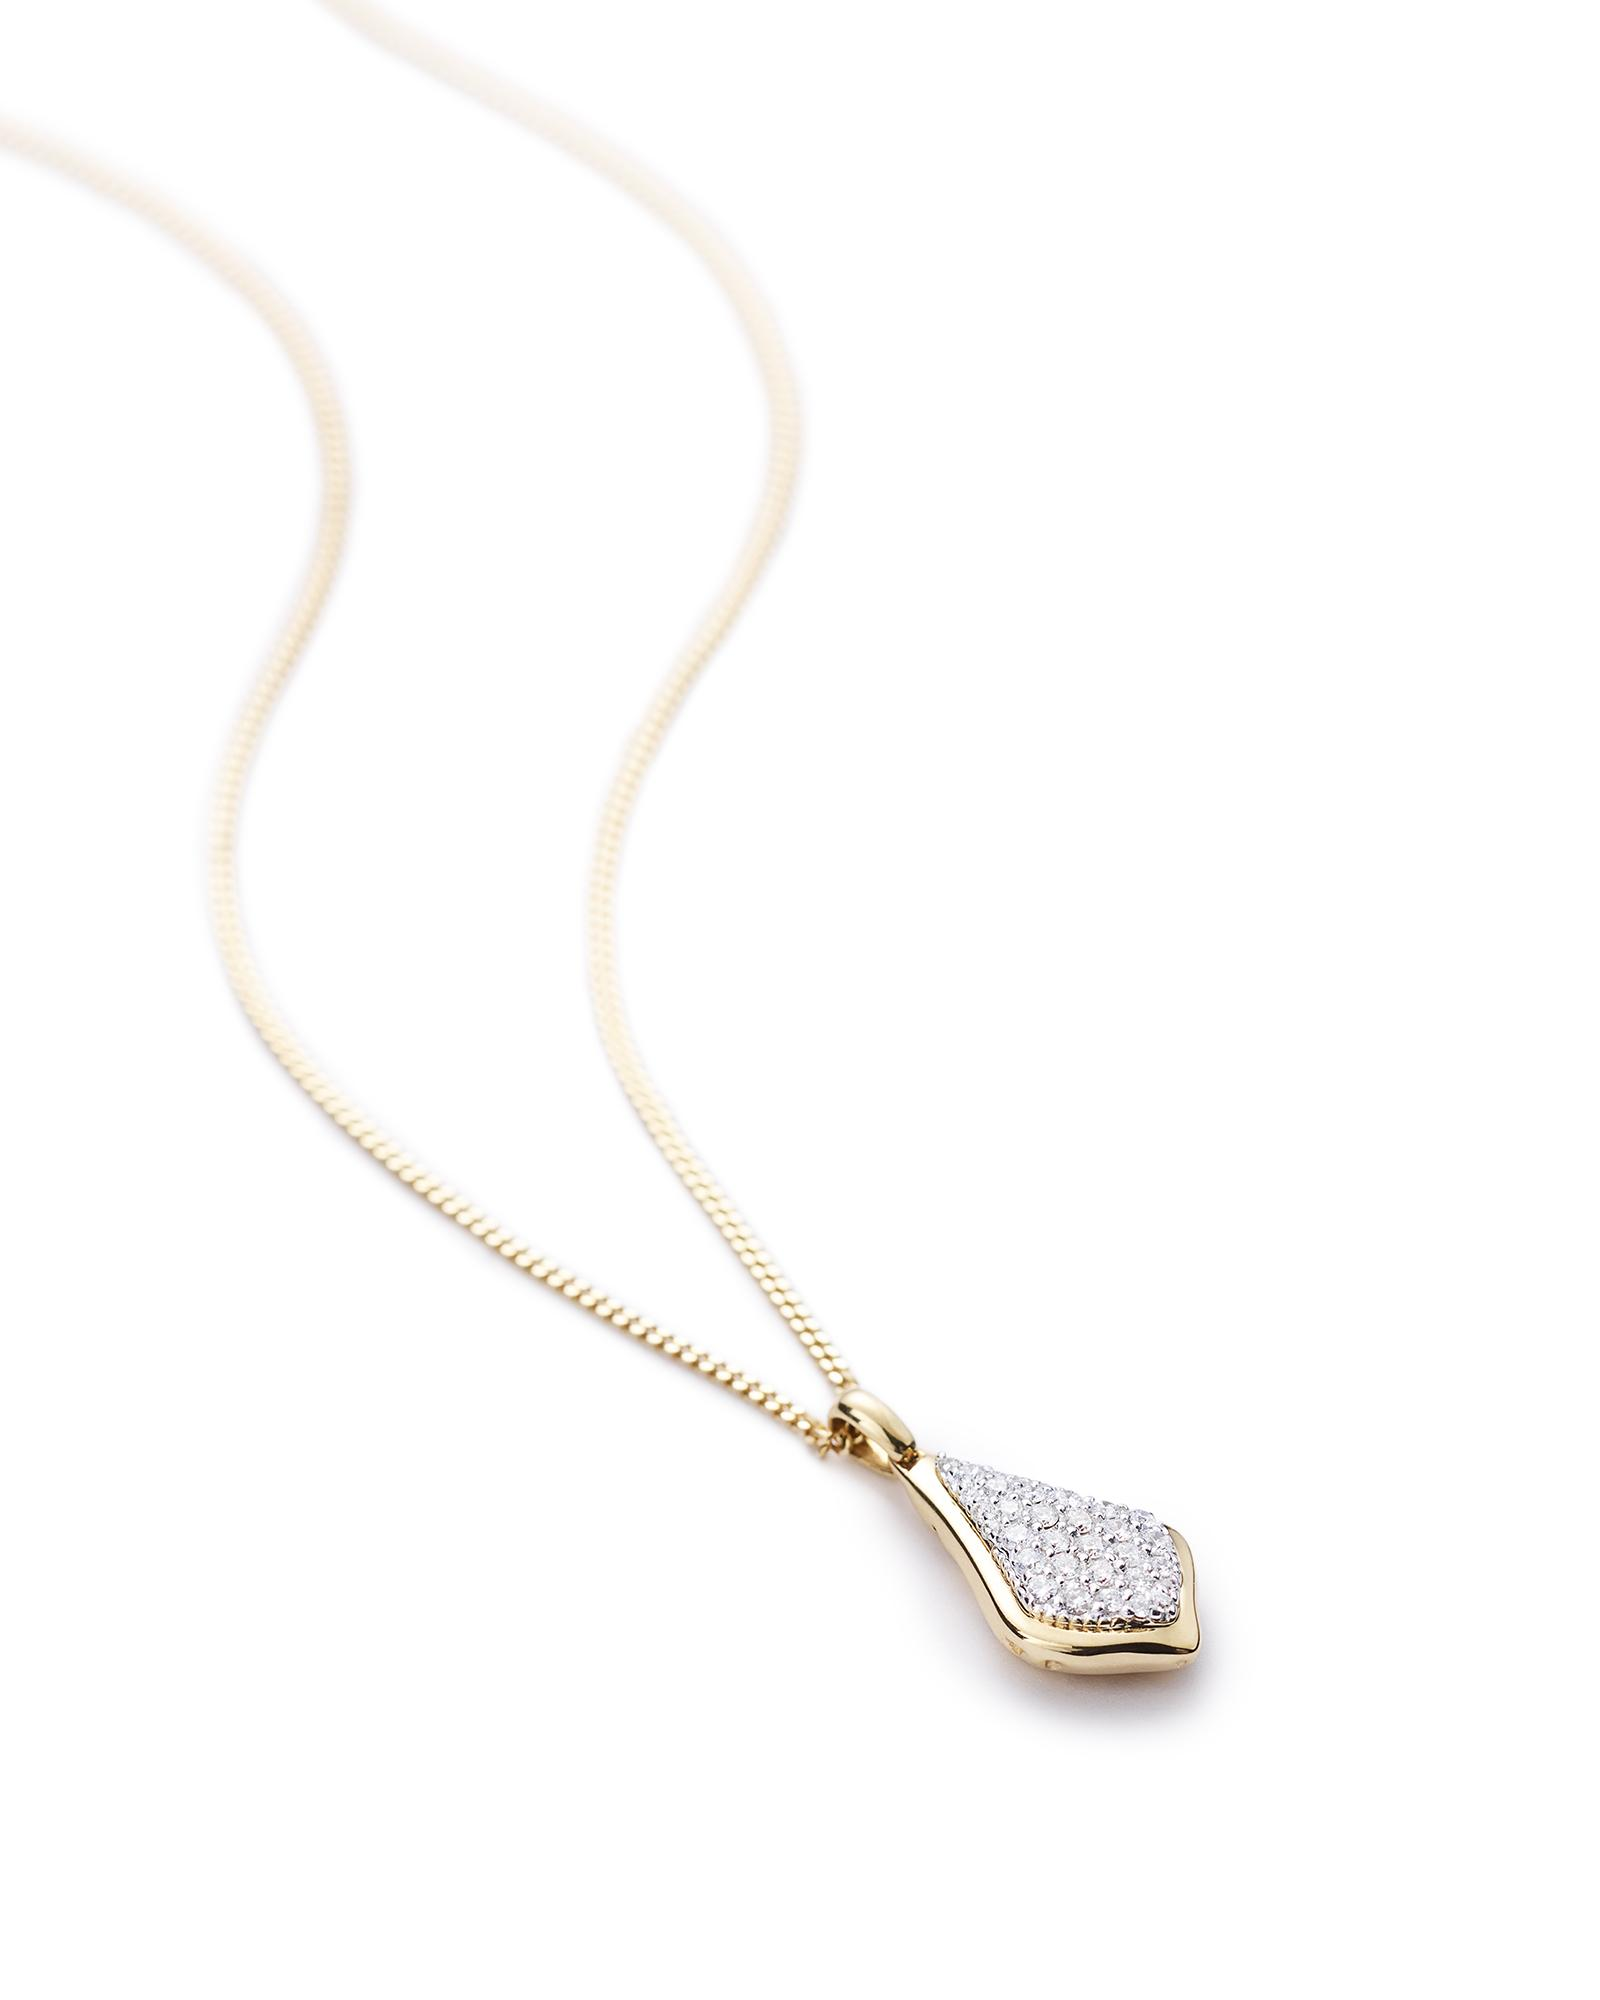 Lela Pendant Necklace in Pave Diamonds